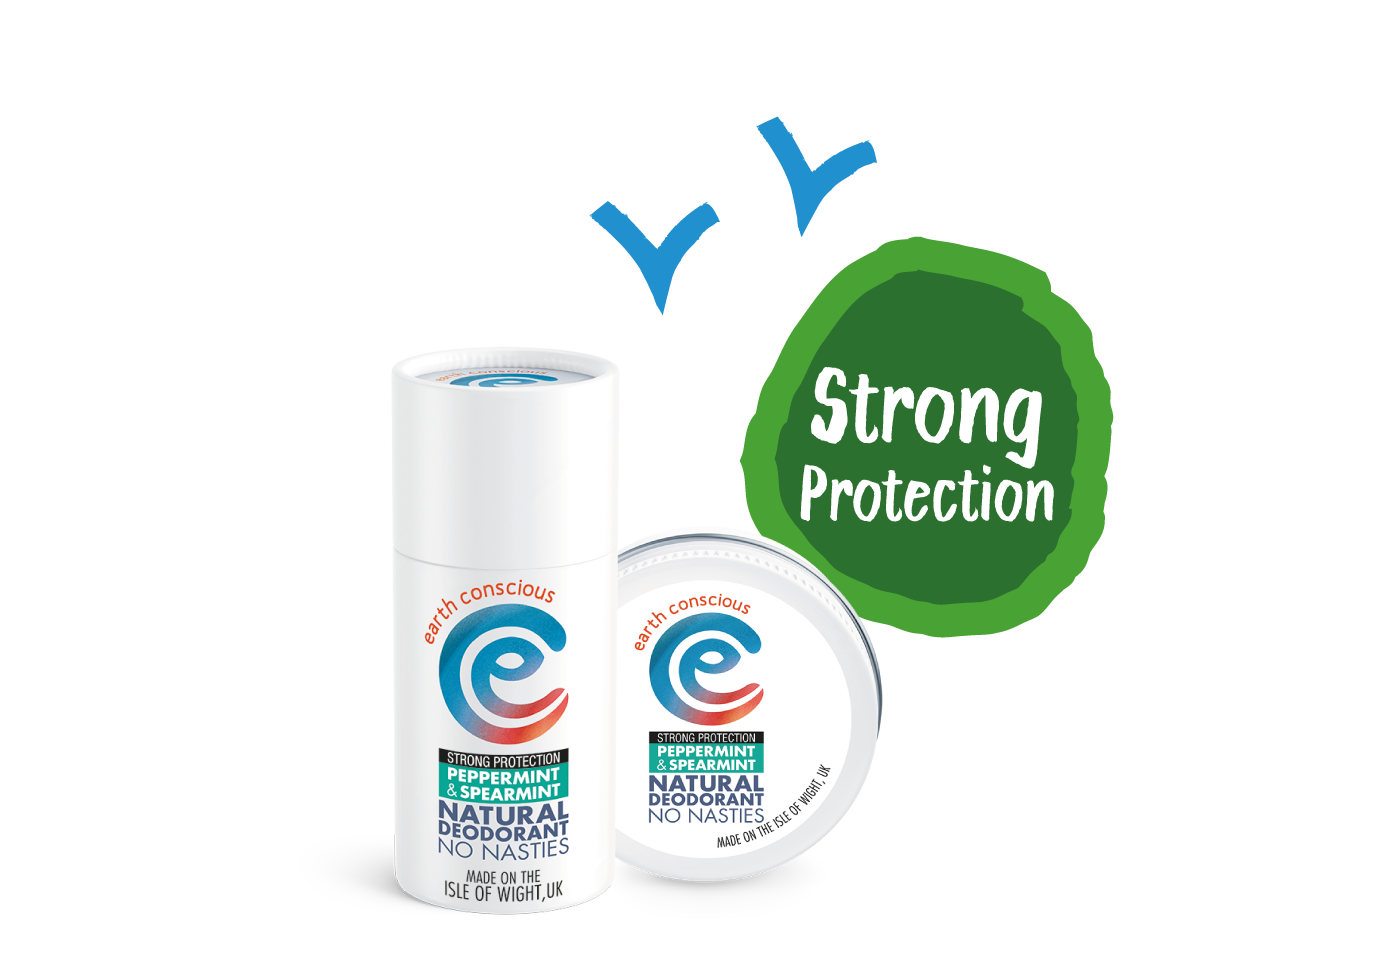 Award Winning Natural Deodorant | Earth Conscious